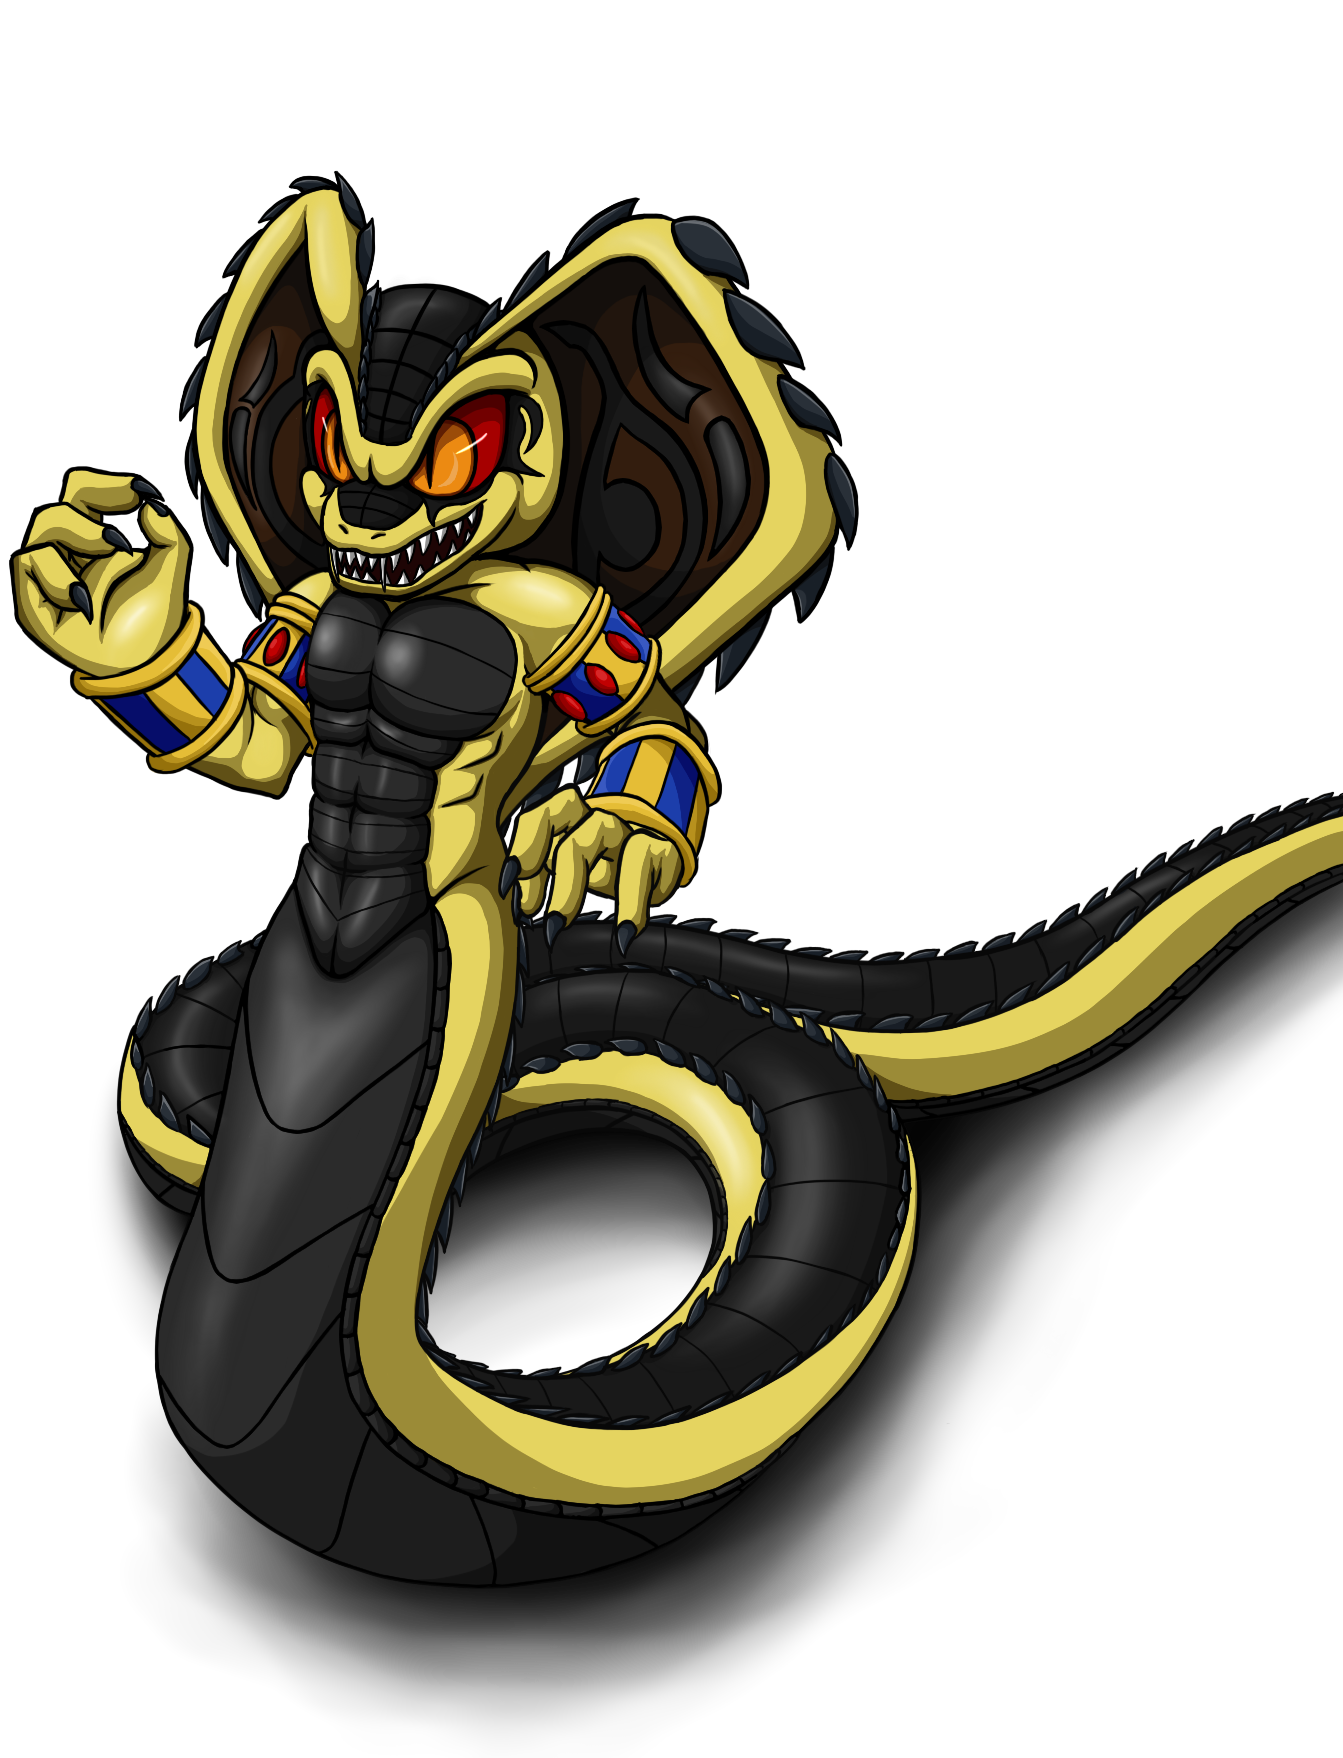 Apophis god of egypt clipart image transparent download Apophis by SonicNo1Fanatic -- Fur Affinity [dot] net image transparent download